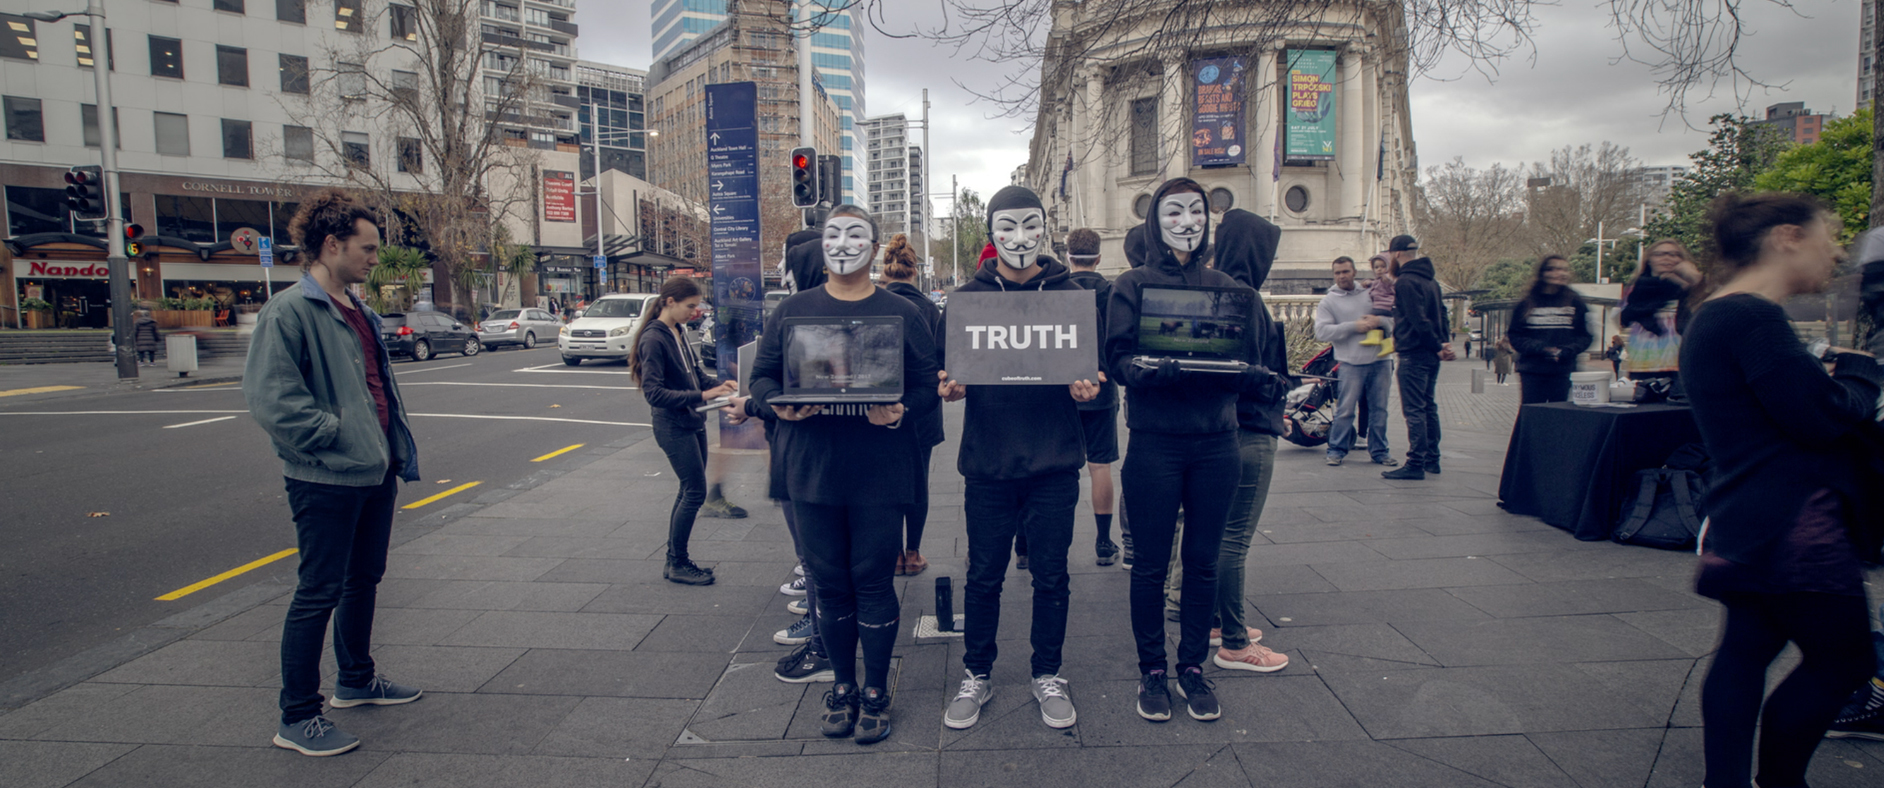 Hero image for Loading Docs 2018 - The Cube of Truth